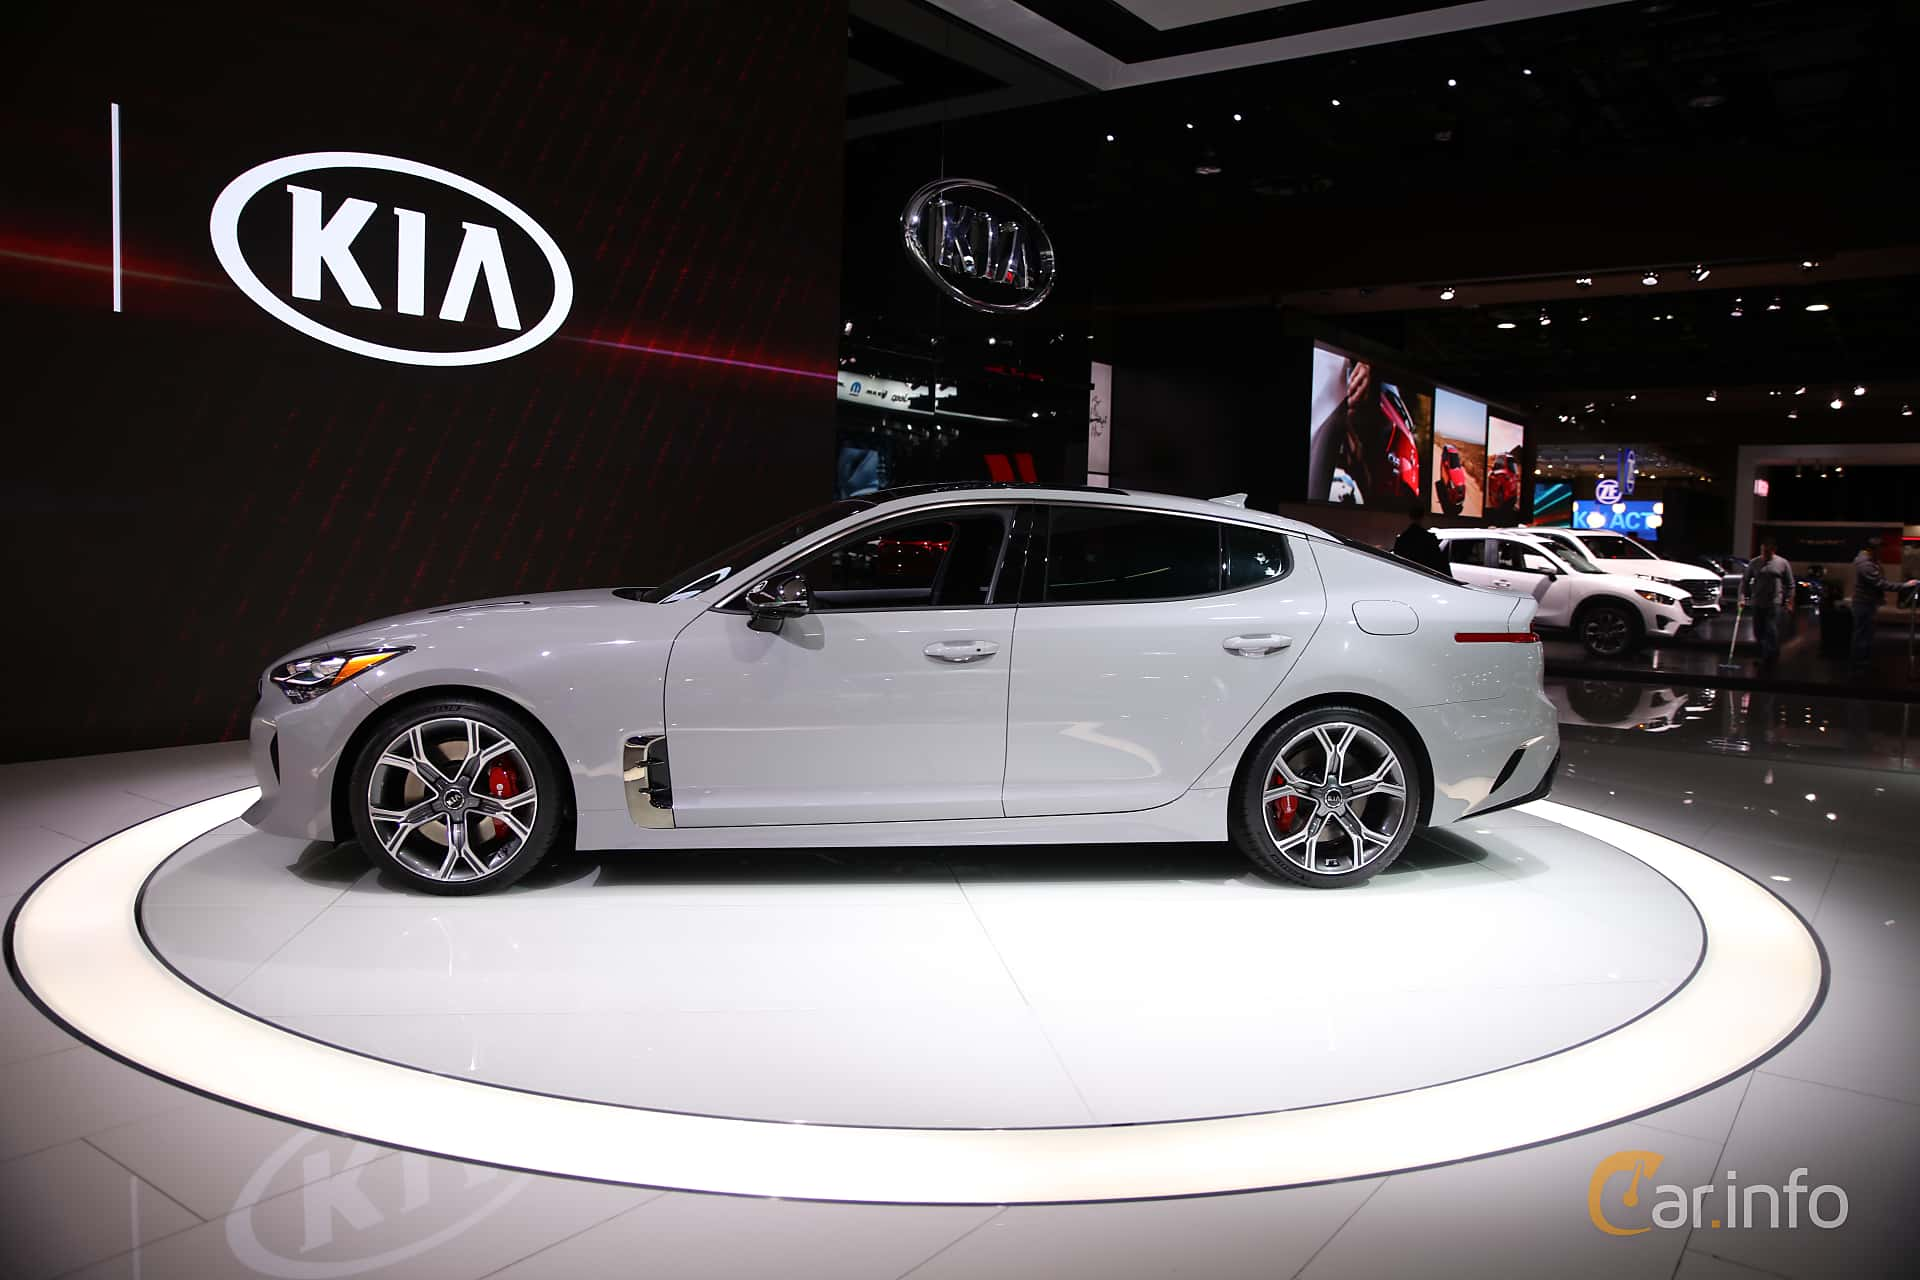 9 images of kia stinger gt 3 3 v6 t gdi awd automatic 365hp 2018 by franzhaenel. Black Bedroom Furniture Sets. Home Design Ideas